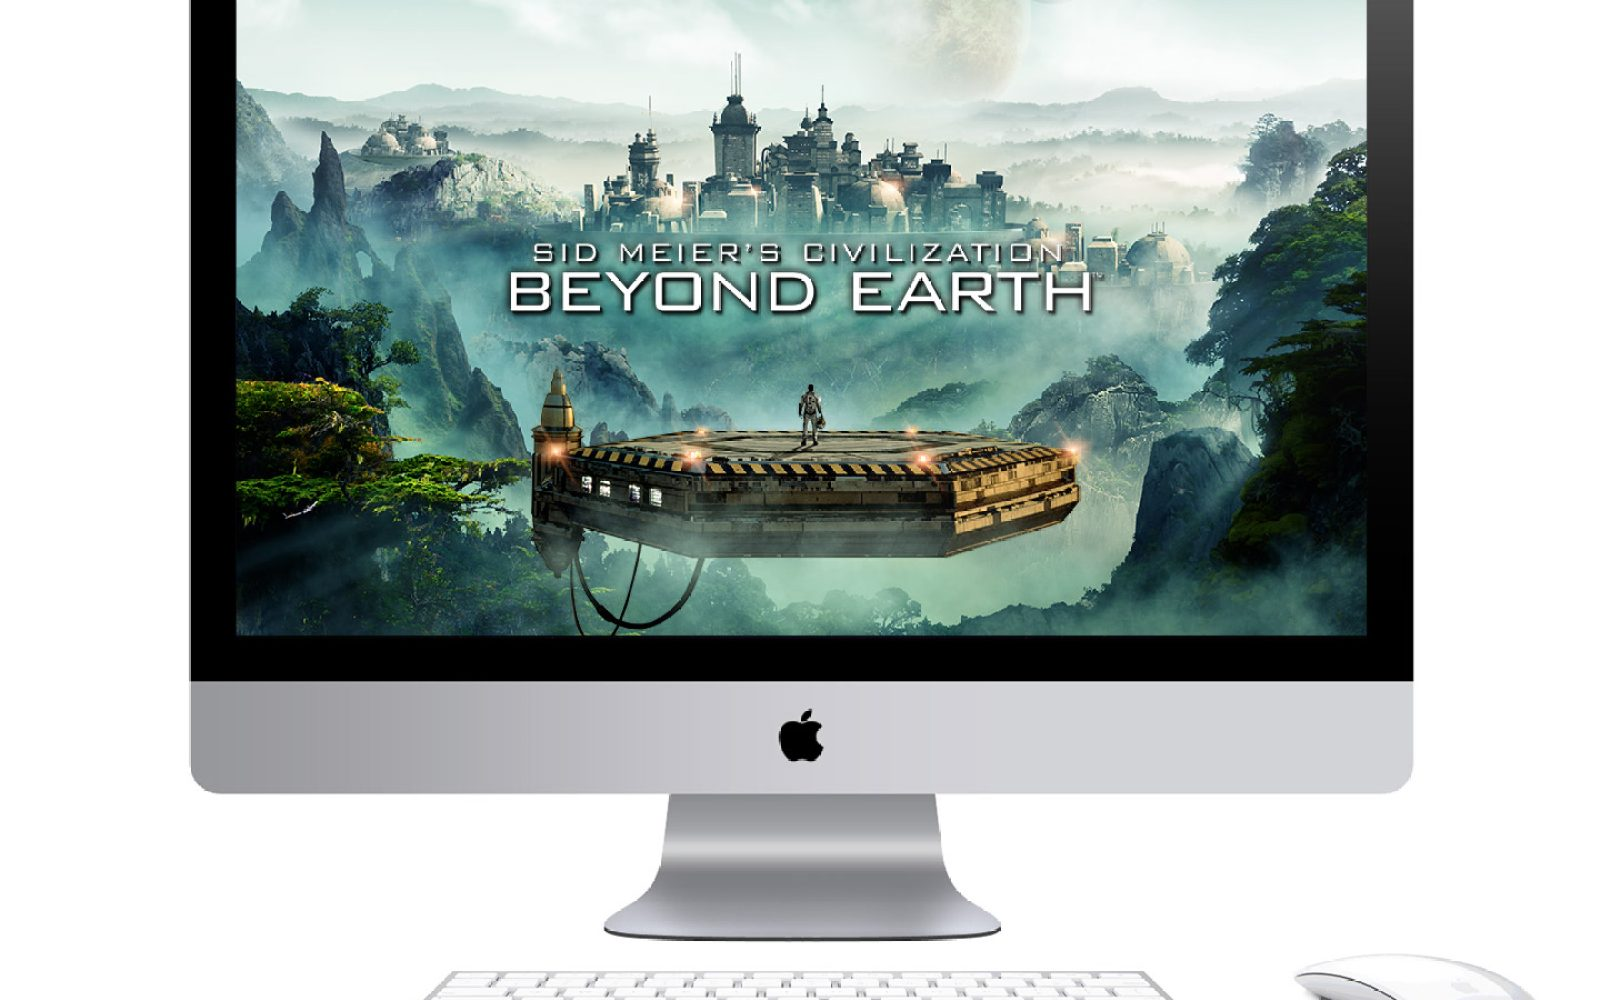 Civilization: Beyond Earth arrives today for Mac users